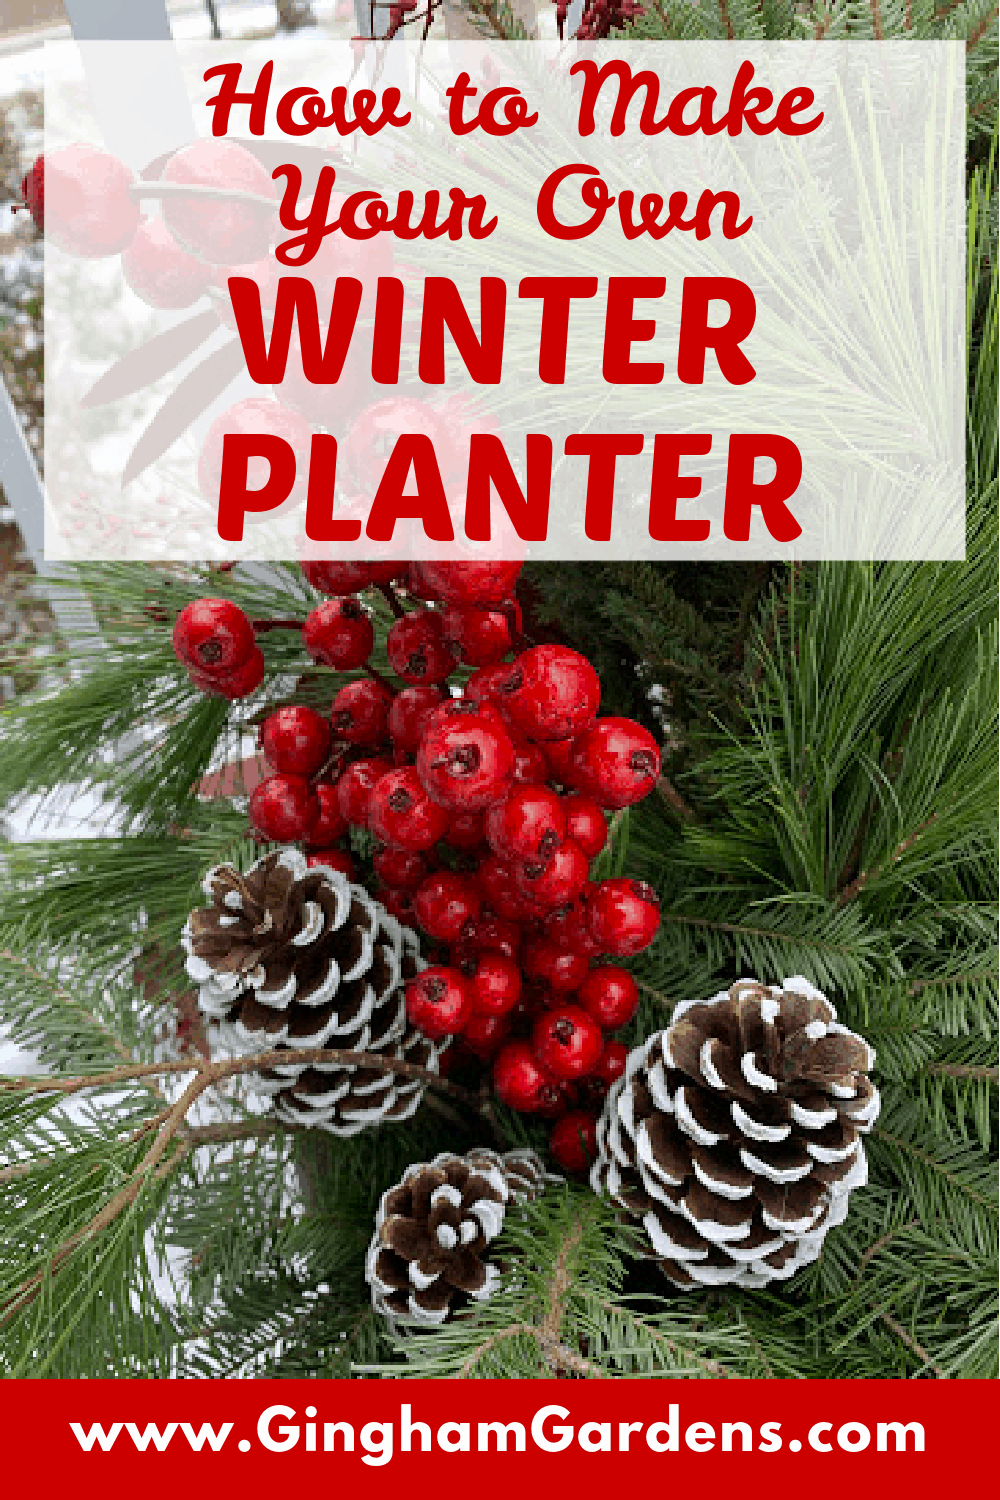 Image of evergreens pinecones and red berries with Text Overlay - How to Make a Winter Planter